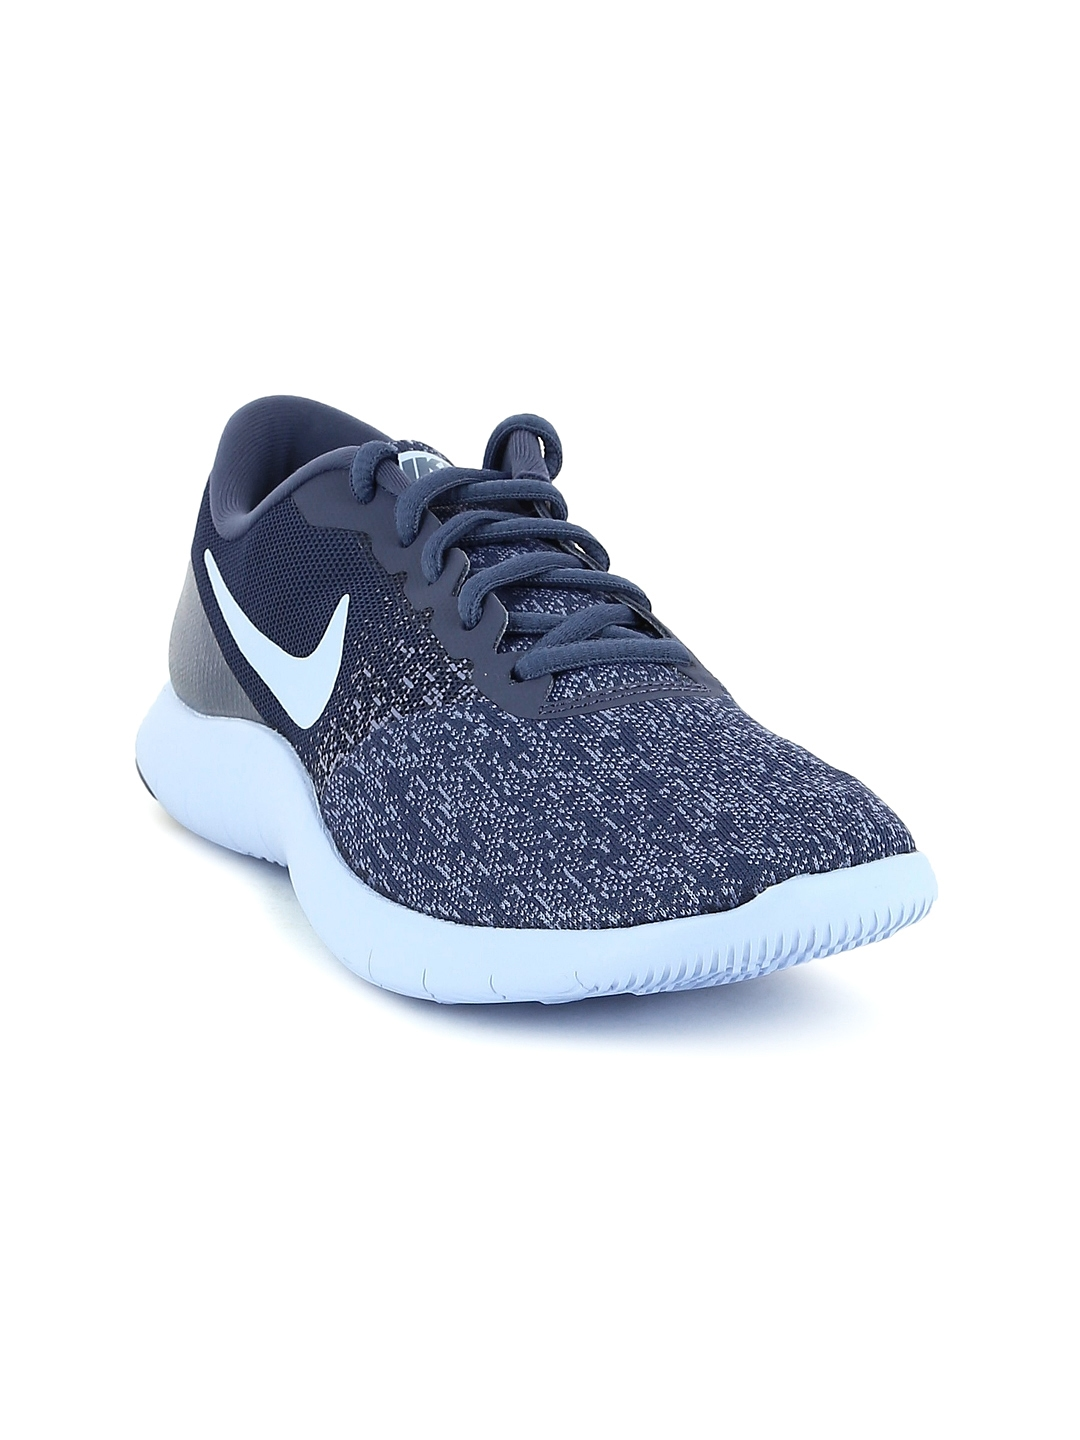 522516228efbf Buy Nike Women Navy Blue FLEX CONTACT Running Shoes - Sports Shoes ...